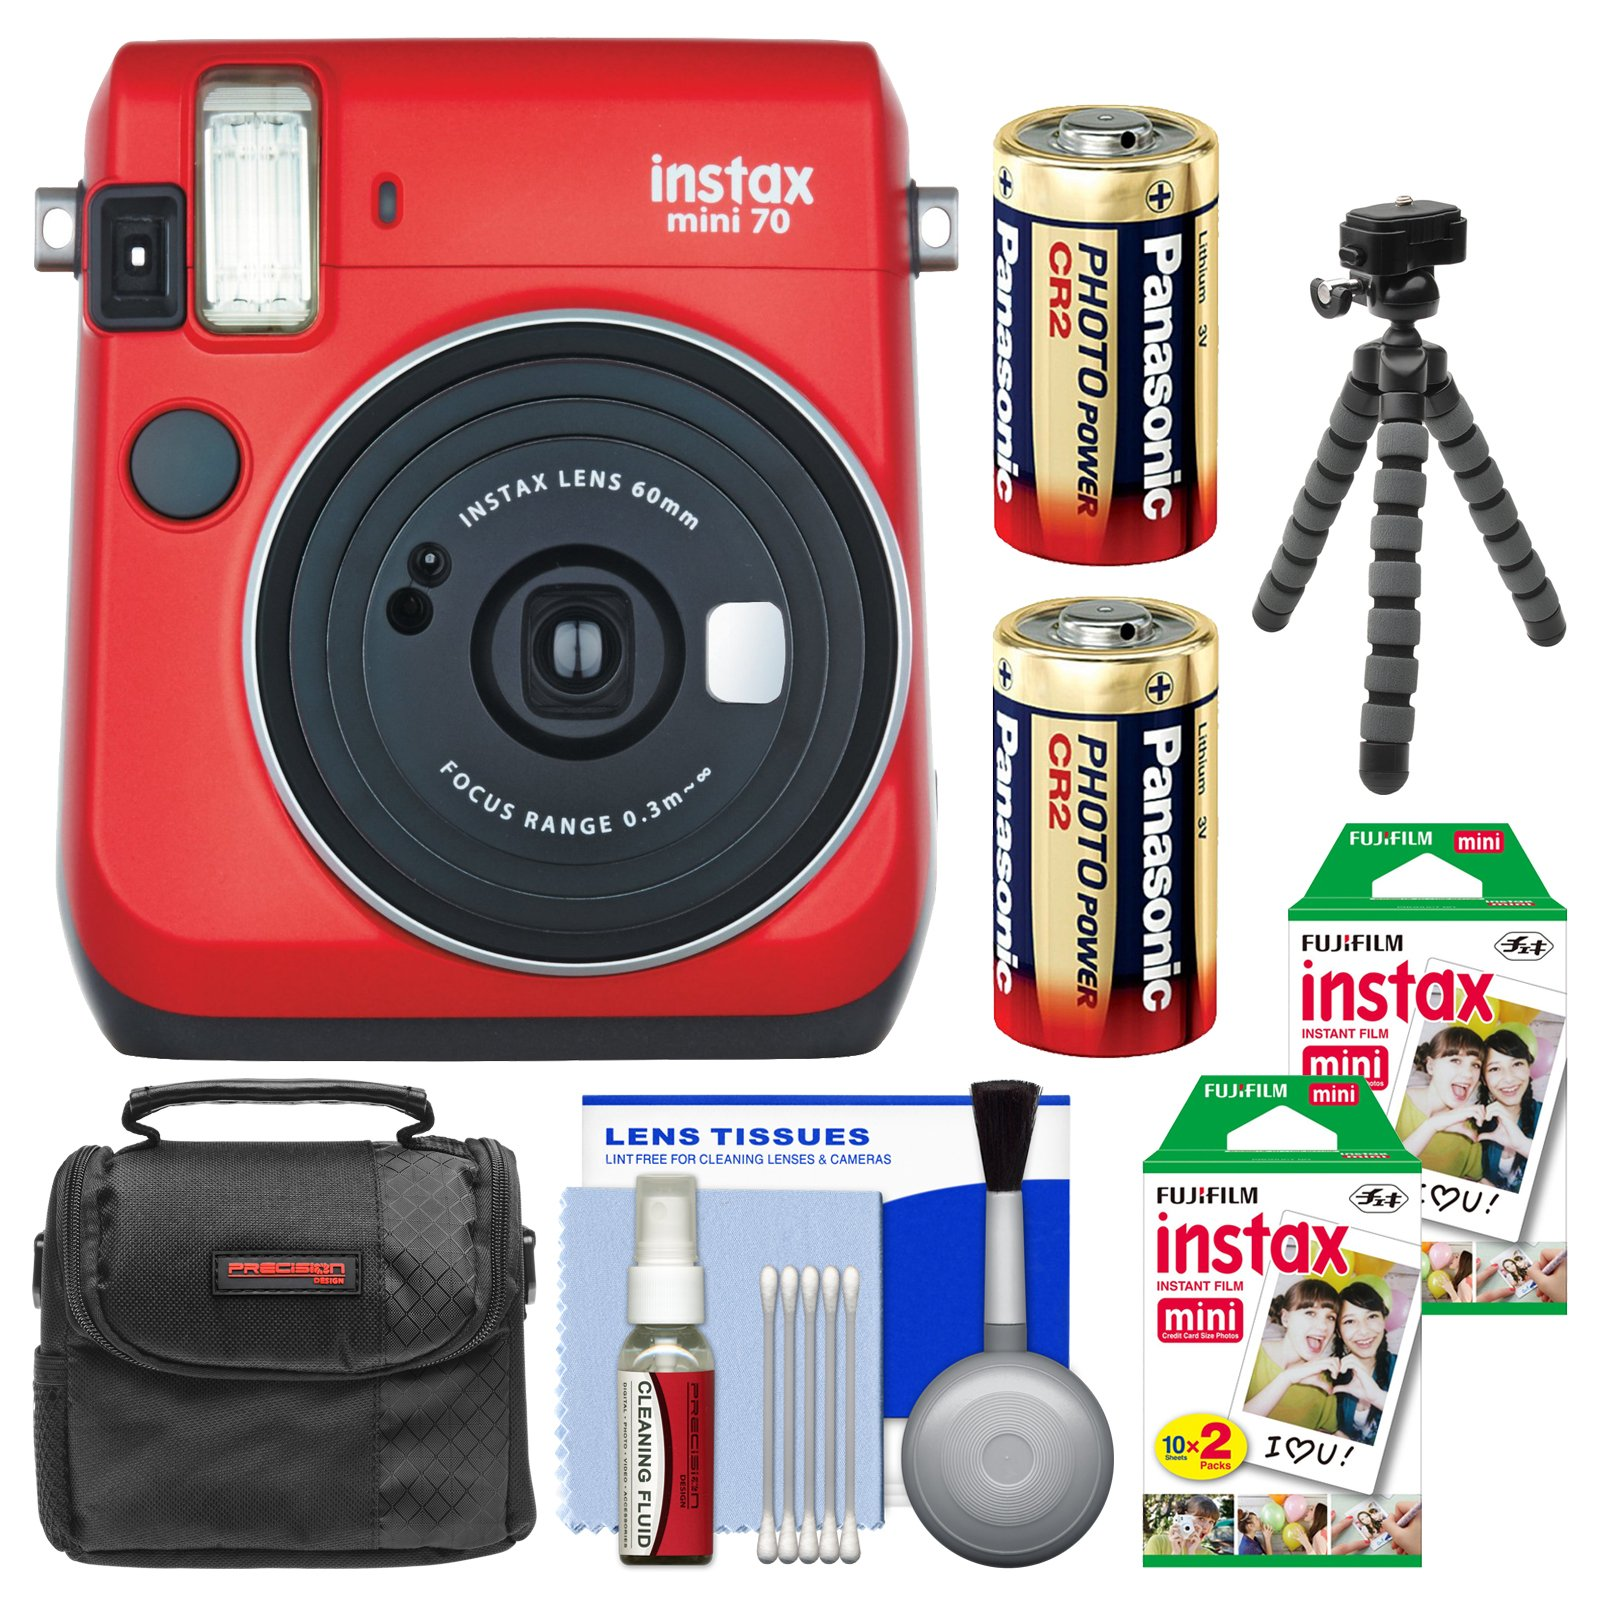 Fujifilm Instax Mini 70 Instant Film Camera (Passion Red) with 40 Prints + Case + Batteries + Flex Tripod + Kit by Fujifilm